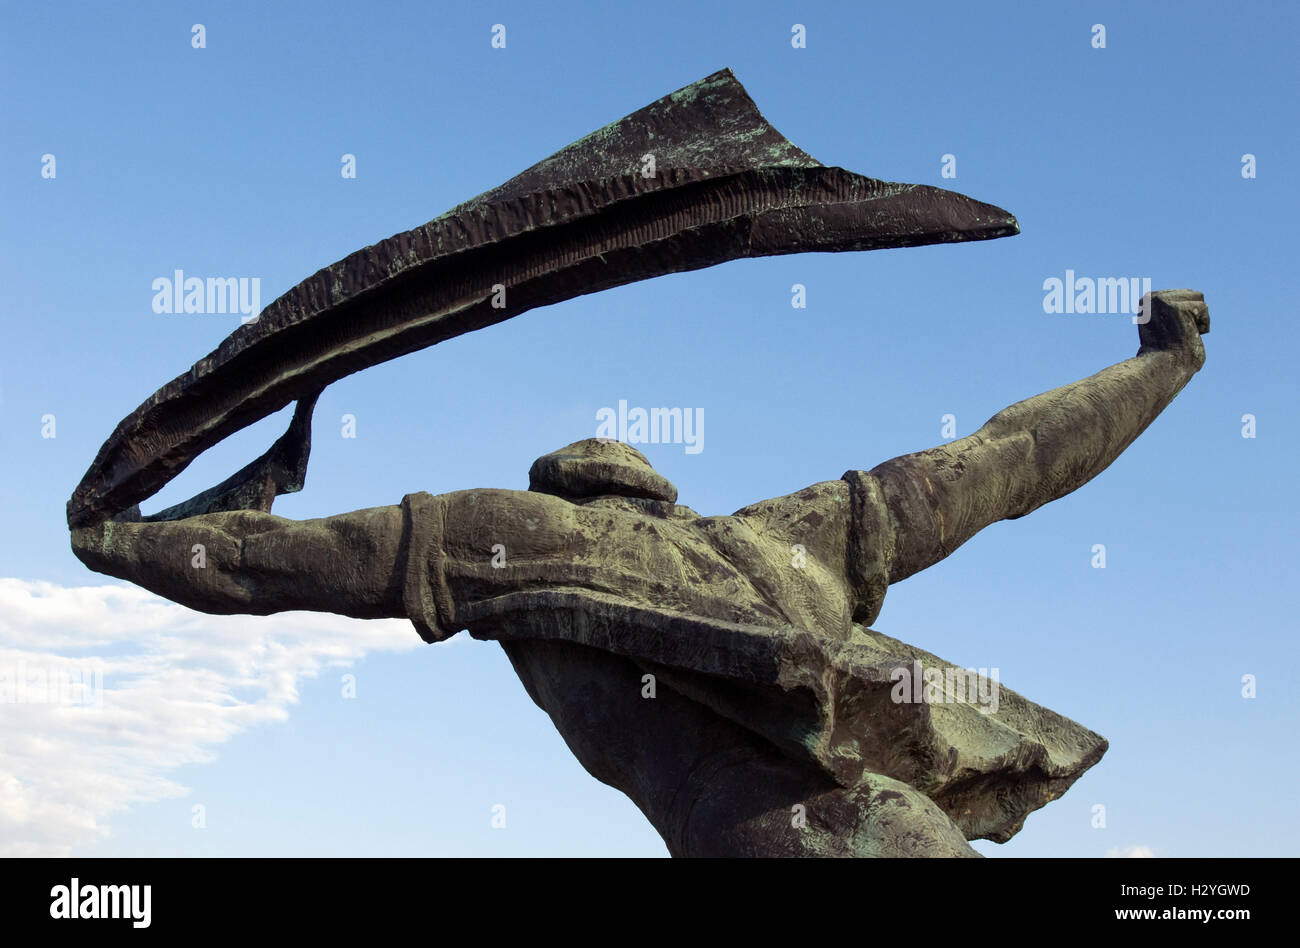 Republic of Councils Monument by Istvan Kiss, Statue Park, Memento Park, Szoborpark, Budapest, Hungary, Europe - Stock Image